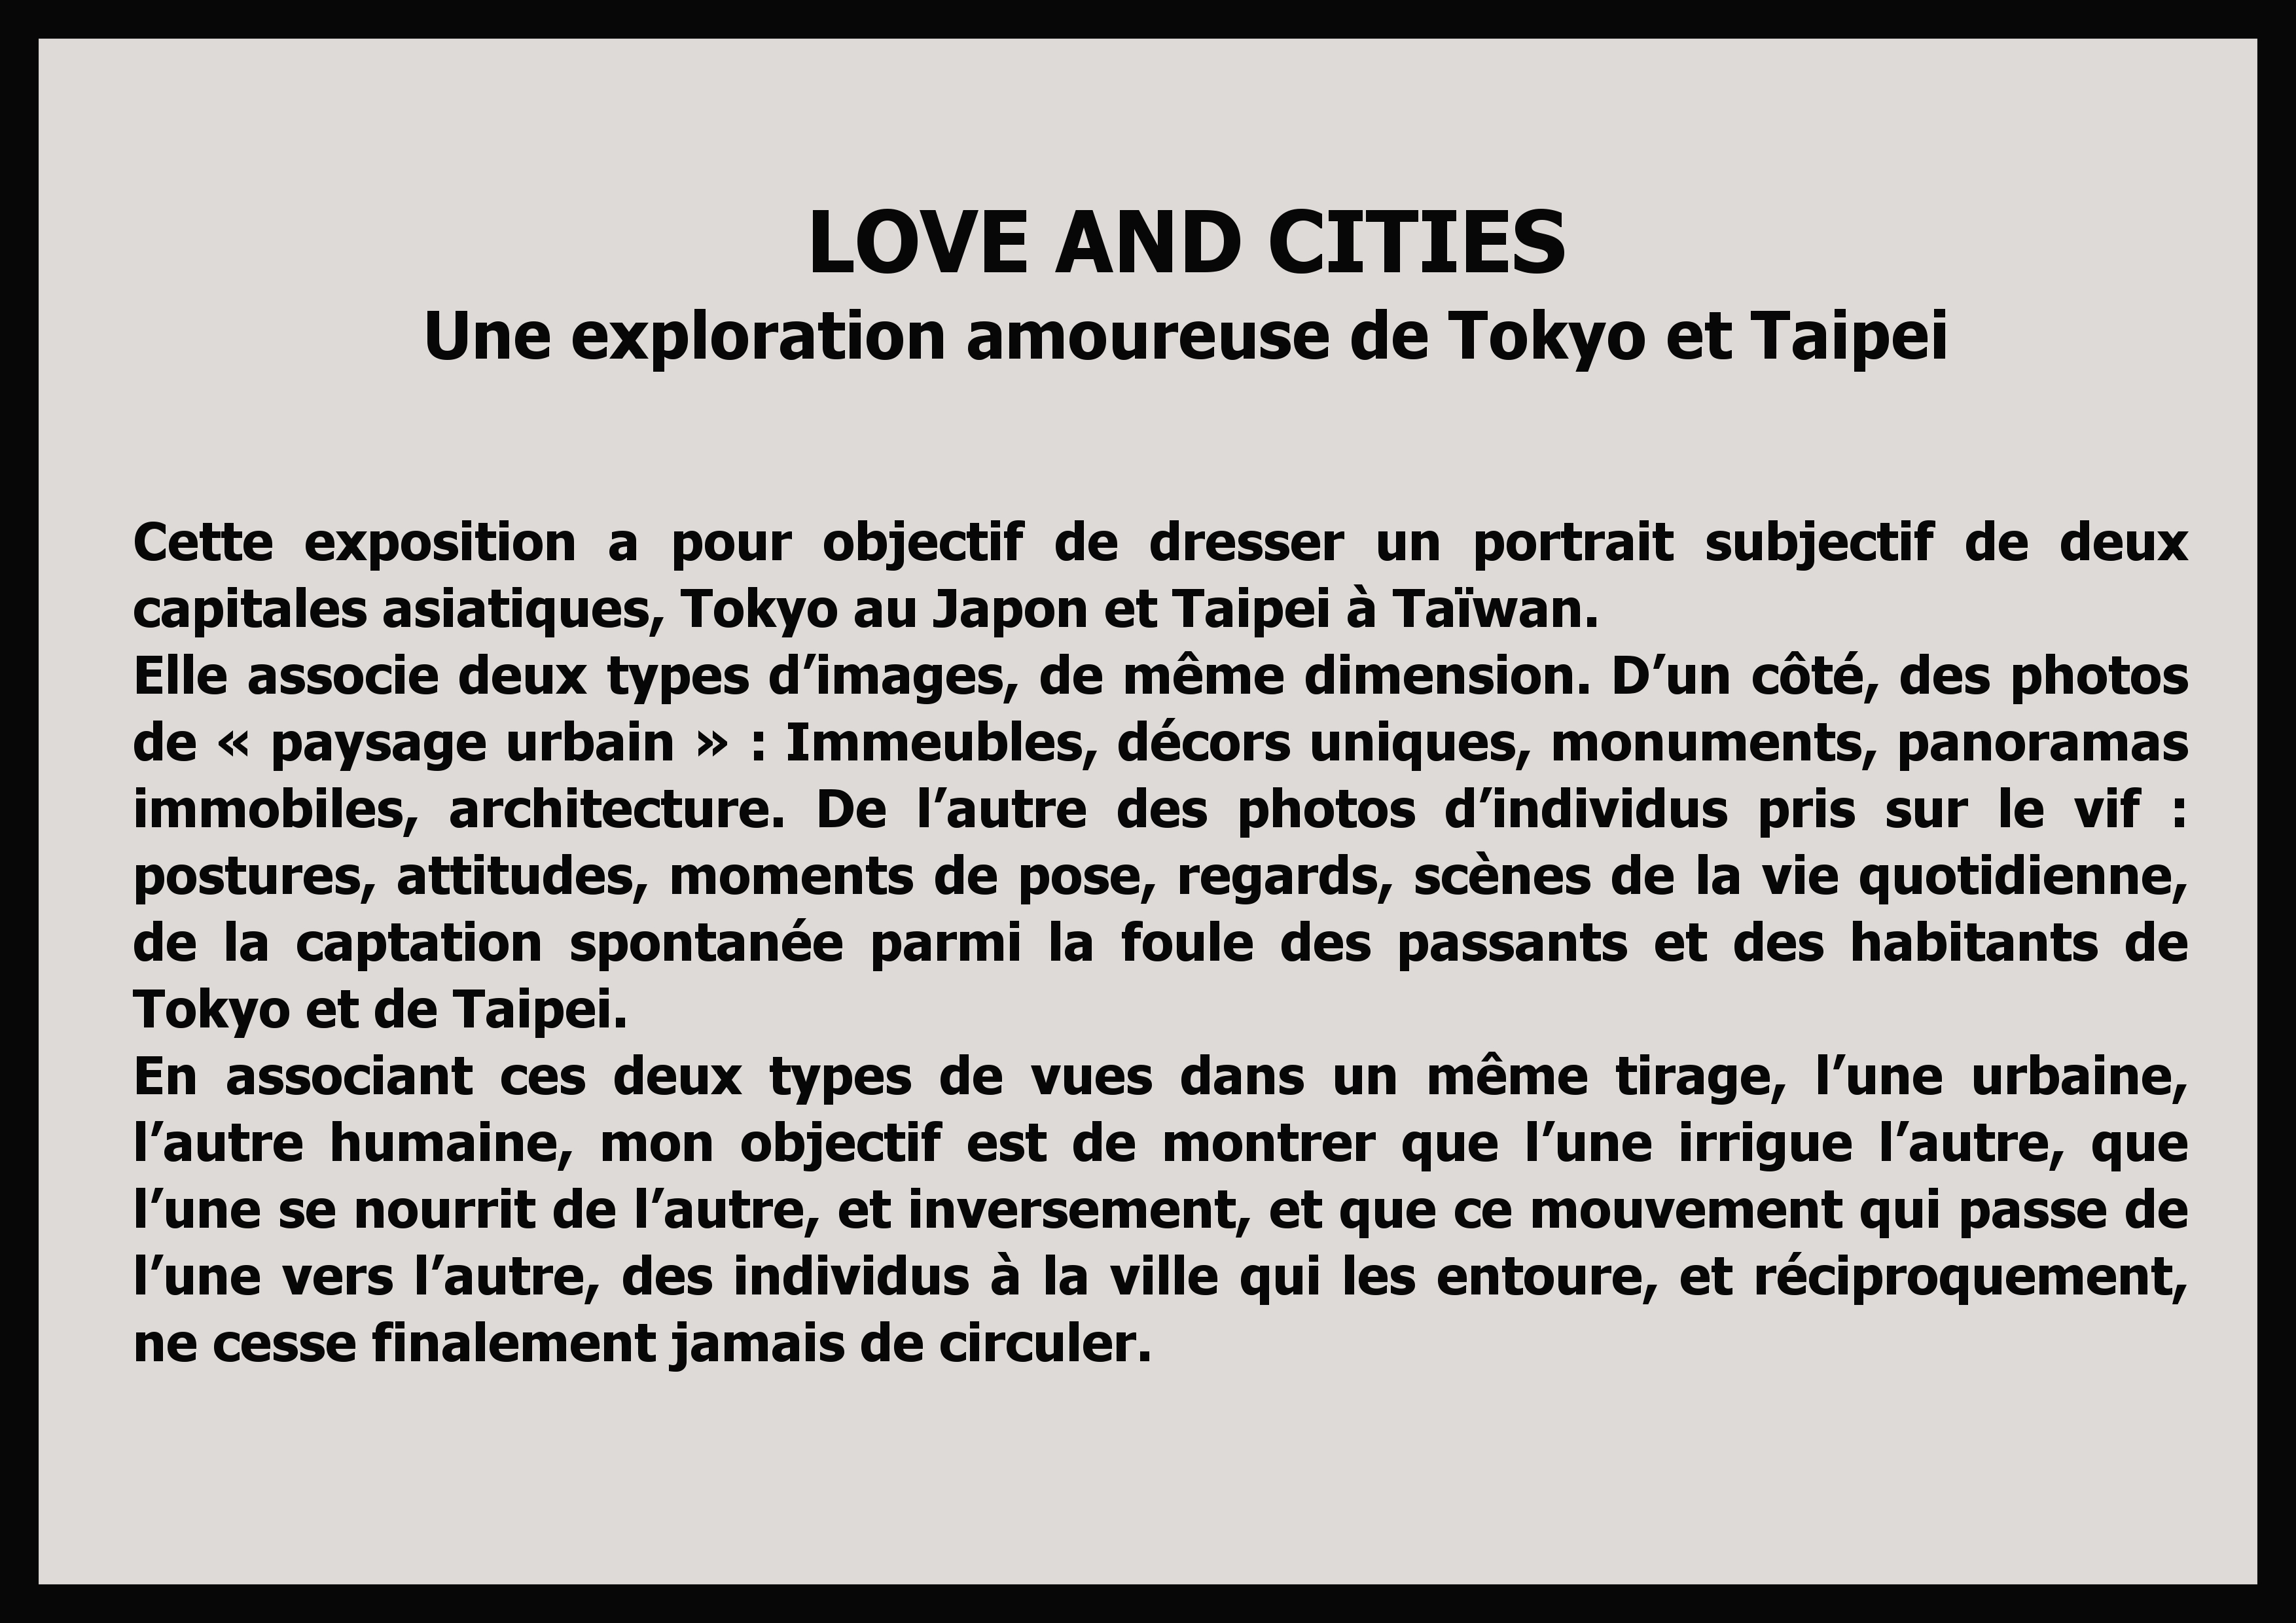 texte Love and cities